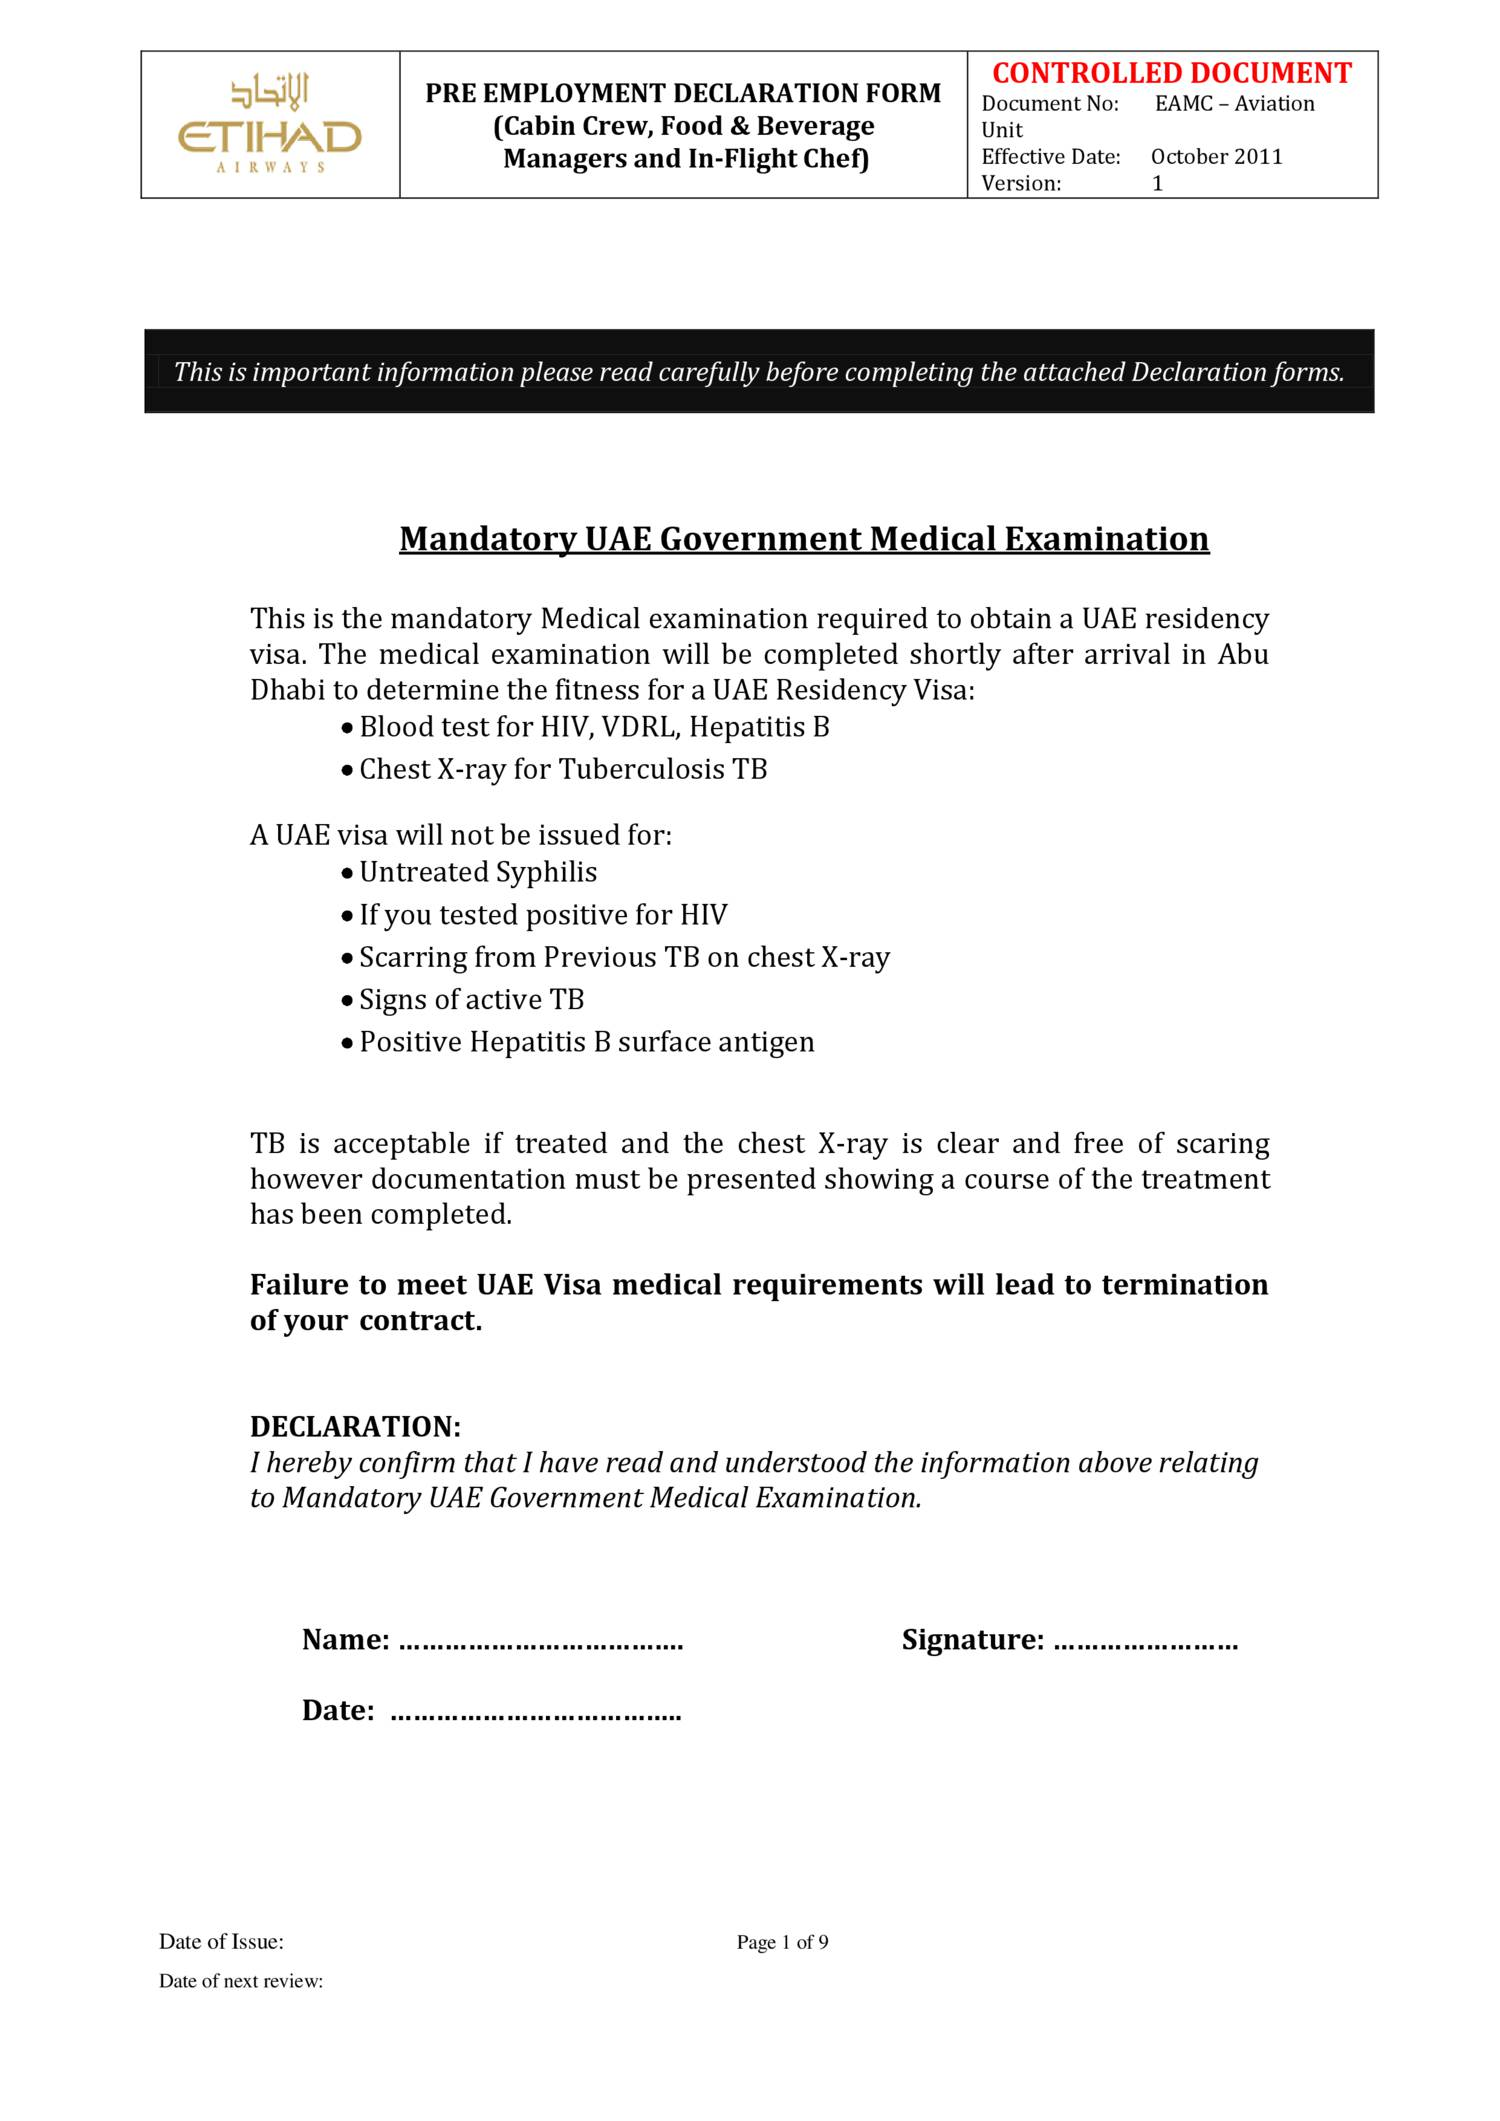 etihad Pre employment medical declaration form.pdf DocDroid